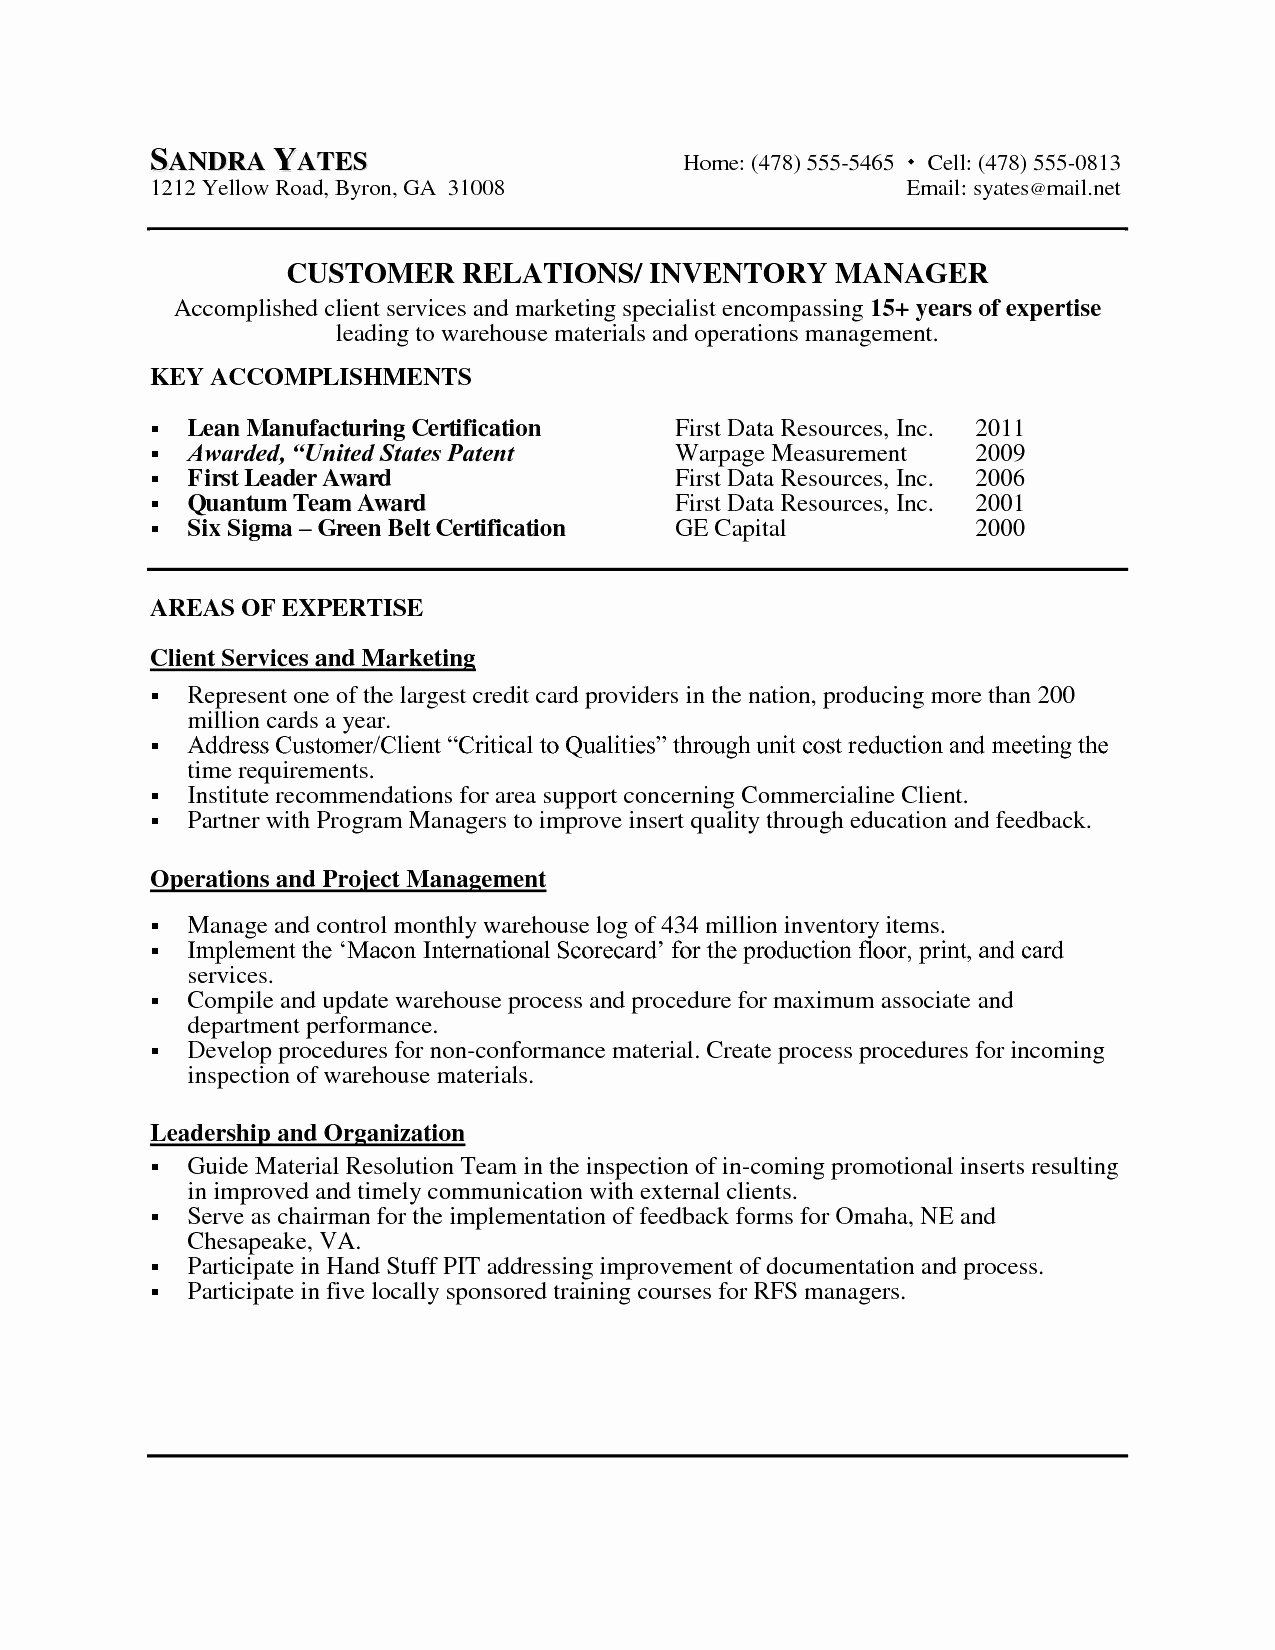 Resume Letter Sample Best Senior Executive Cover Letter